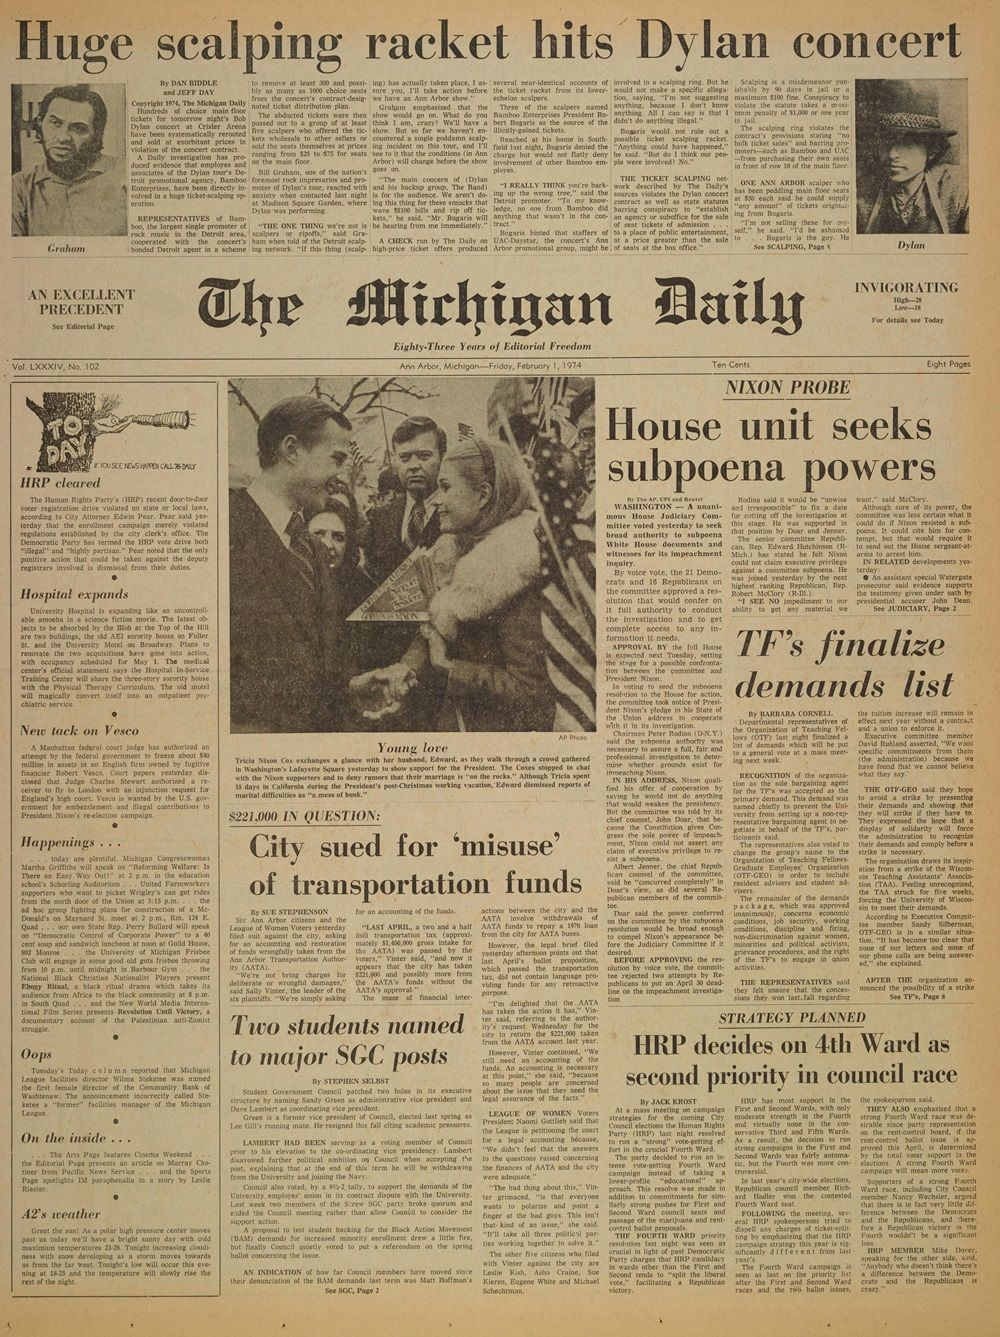 the Michigan daily 2 Jan 1974 Bob Dylan cover story